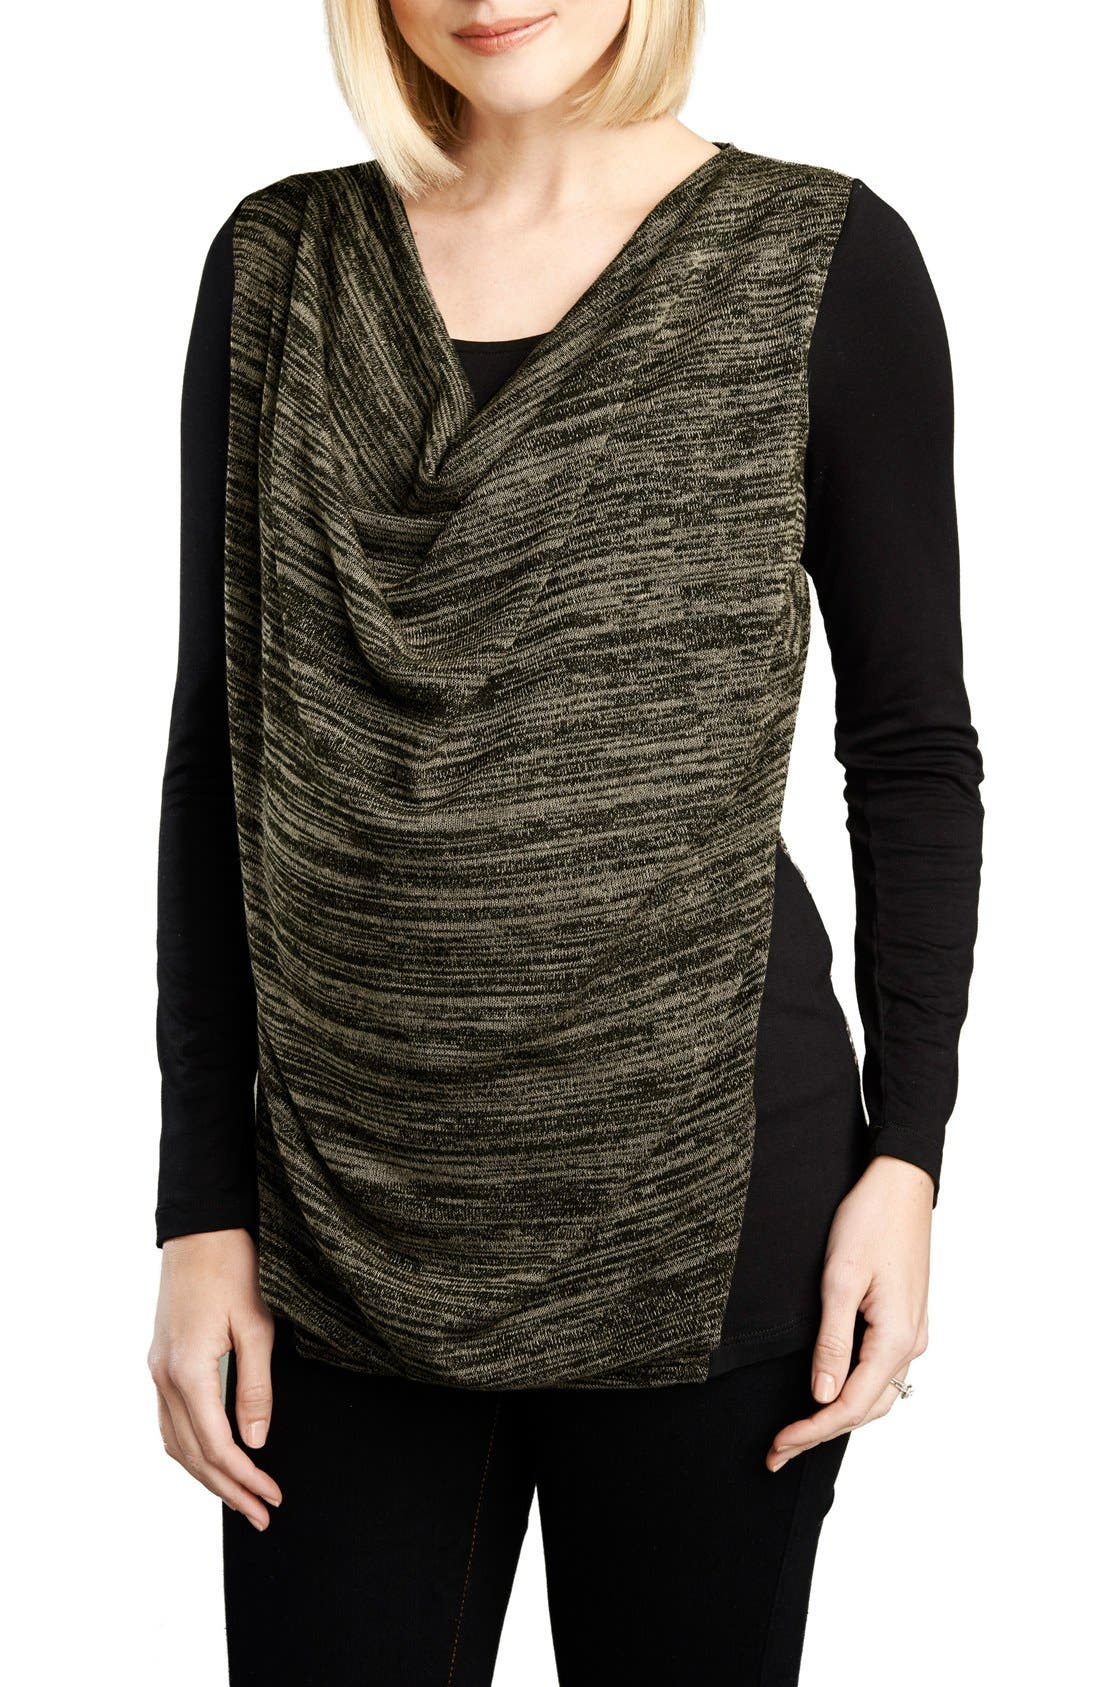 Cowl Neck Nursing Top,                             Main thumbnail 1, color,                             BLACK/OLIVE SPACE DYE